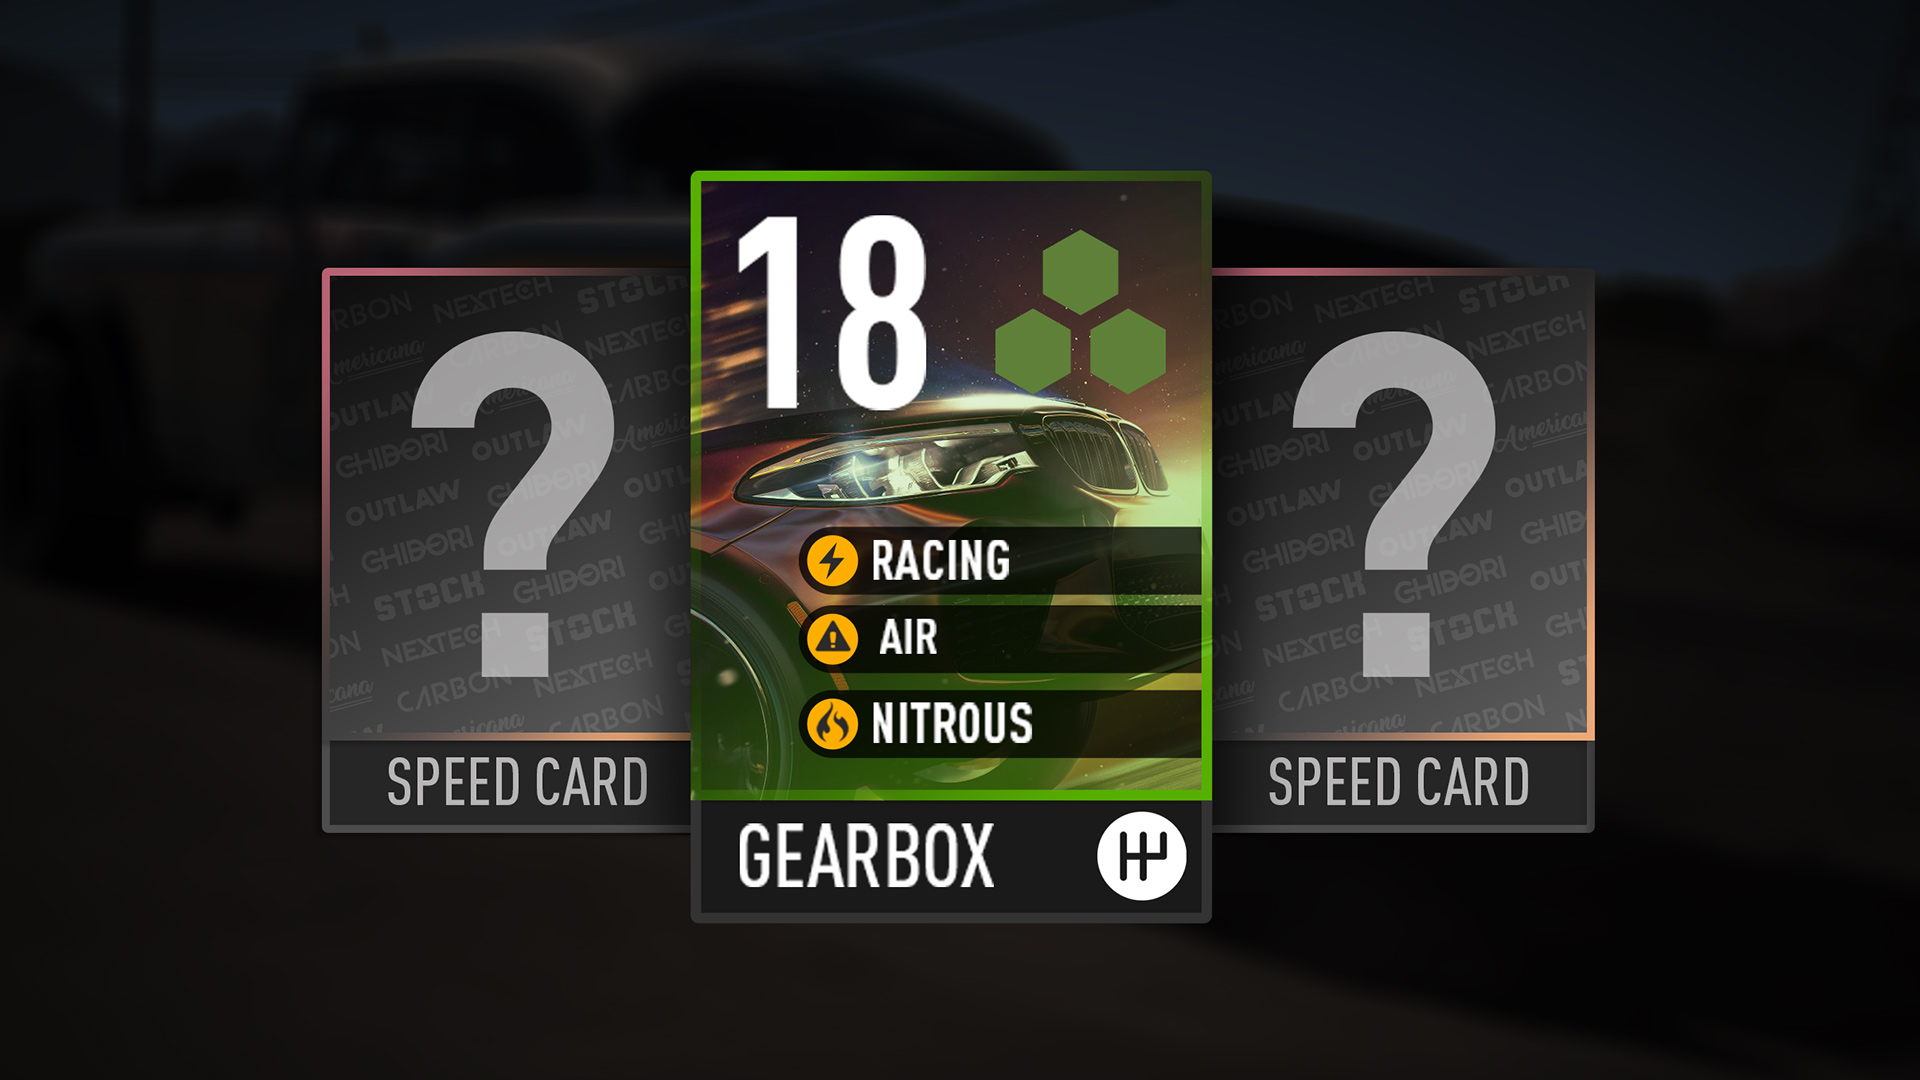 Nfs Payback Karte.Speed Cards Need For Speed Wiki Fandom Powered By Wikia